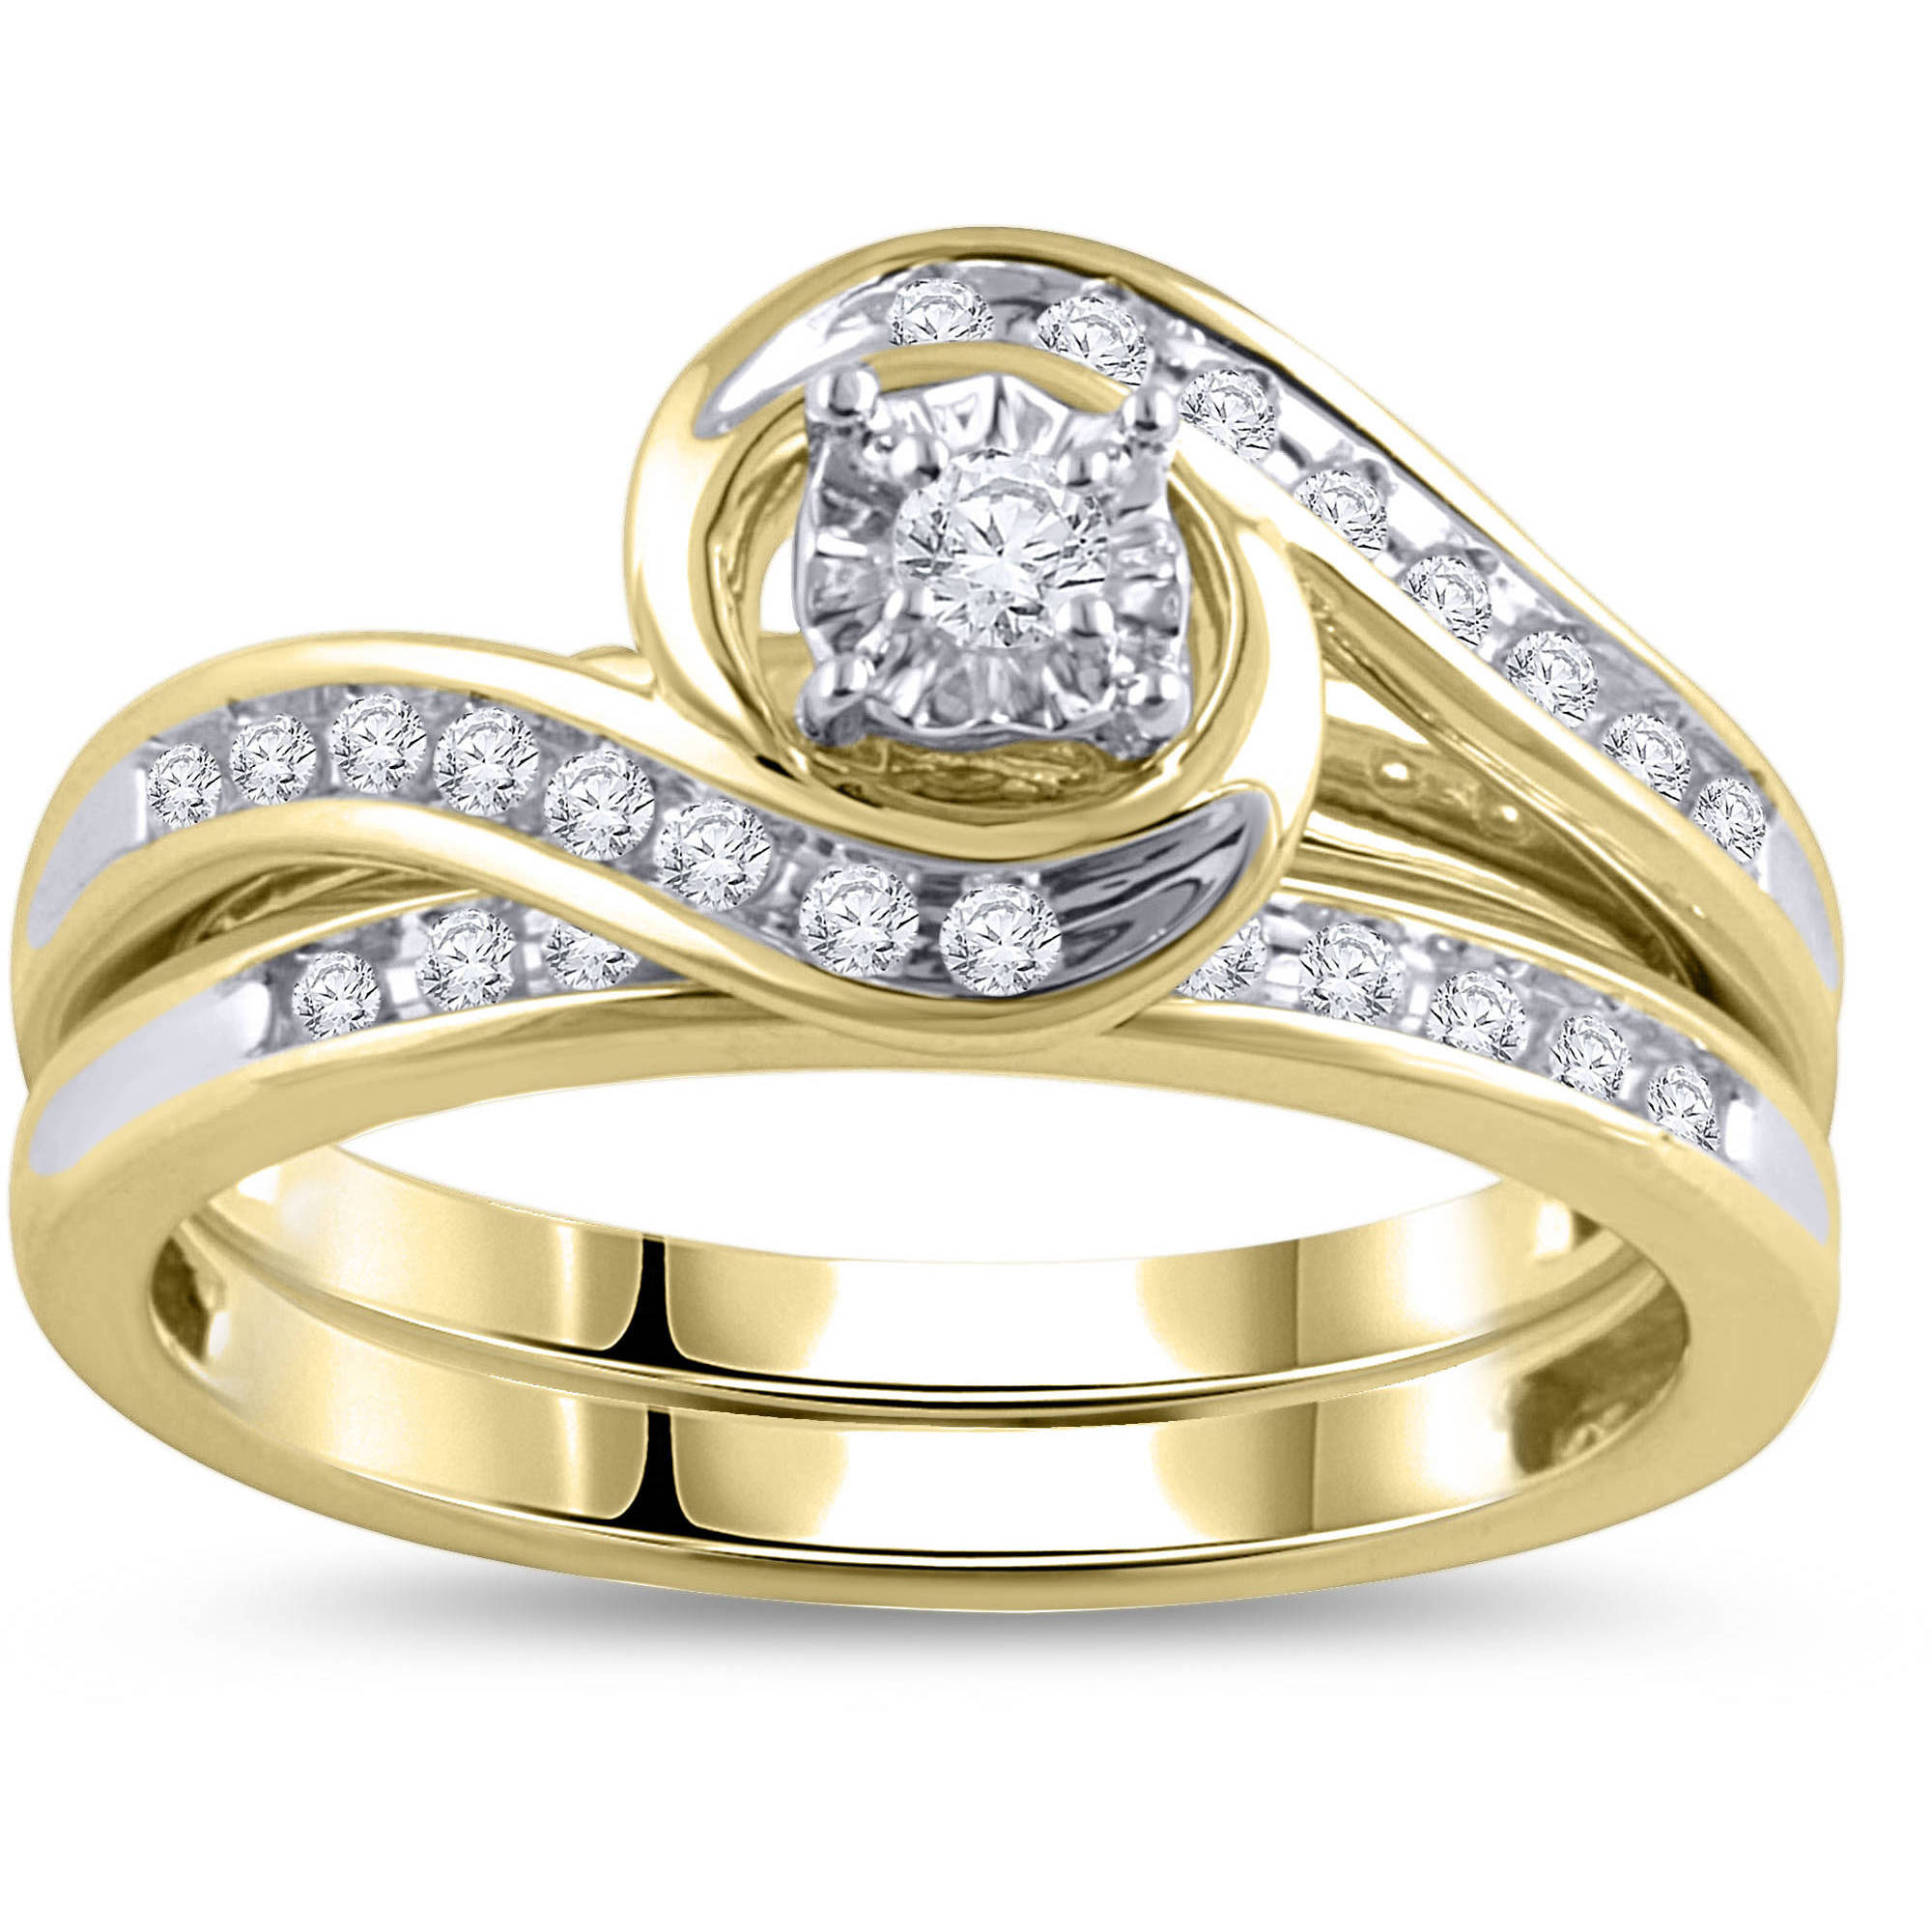 1/3 Carat Diamond Yellow Gold Bypass Bridal Ring Set